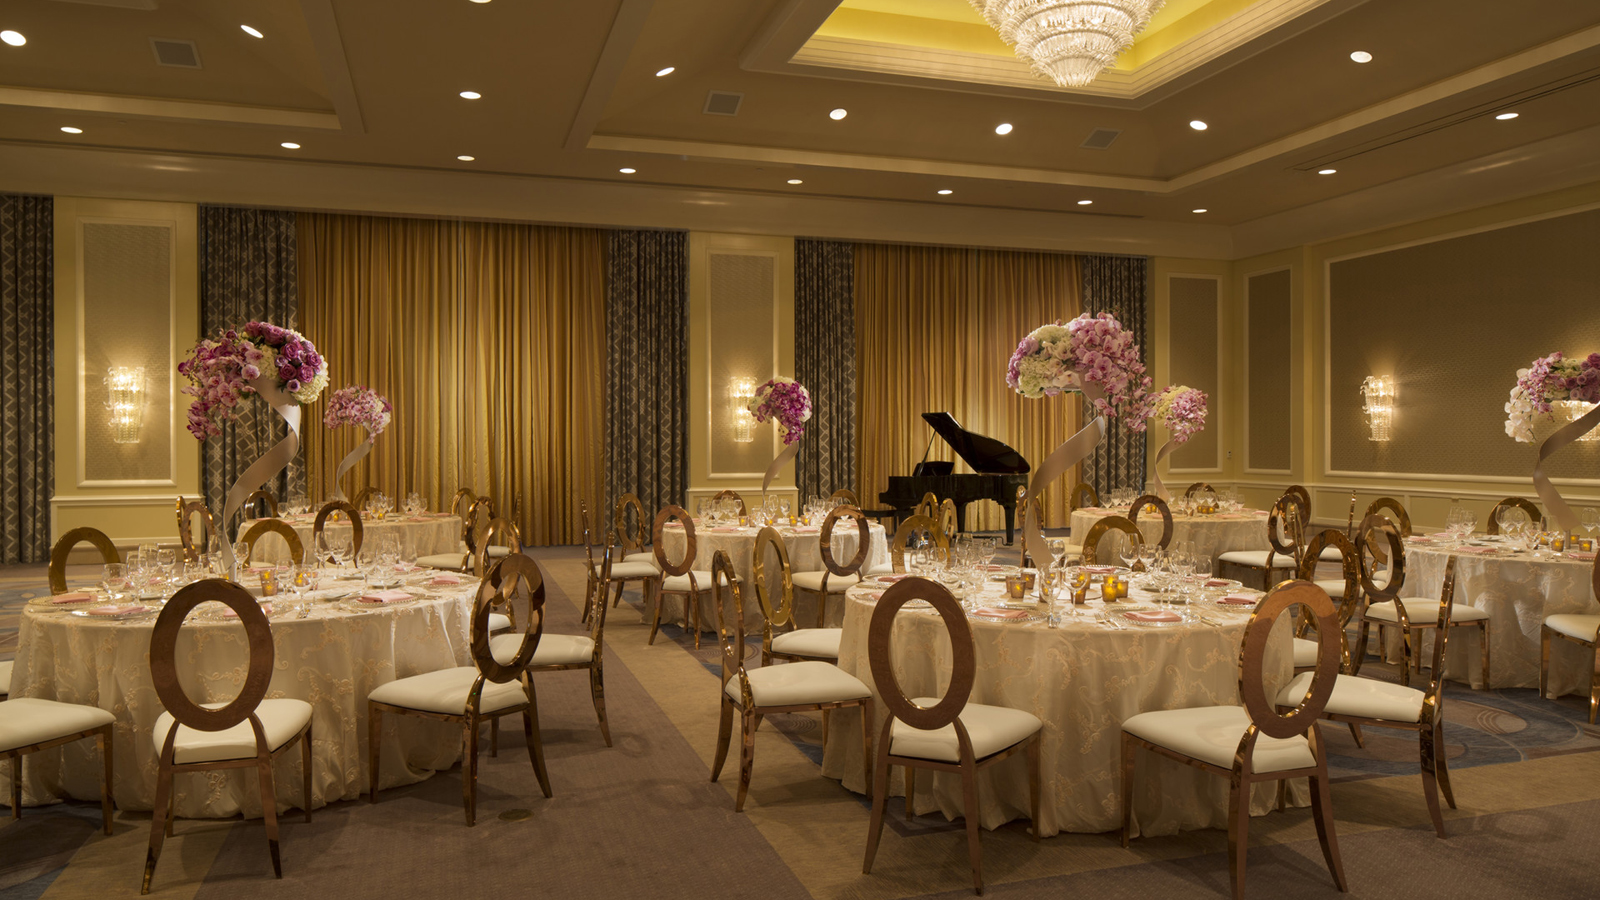 San francisco hotel wedding venue four seasons san francisco overseen by the warm thoughtful expert assistance of our four seasons san francisco wedding specialist celebrate your special day in the bay area junglespirit Image collections